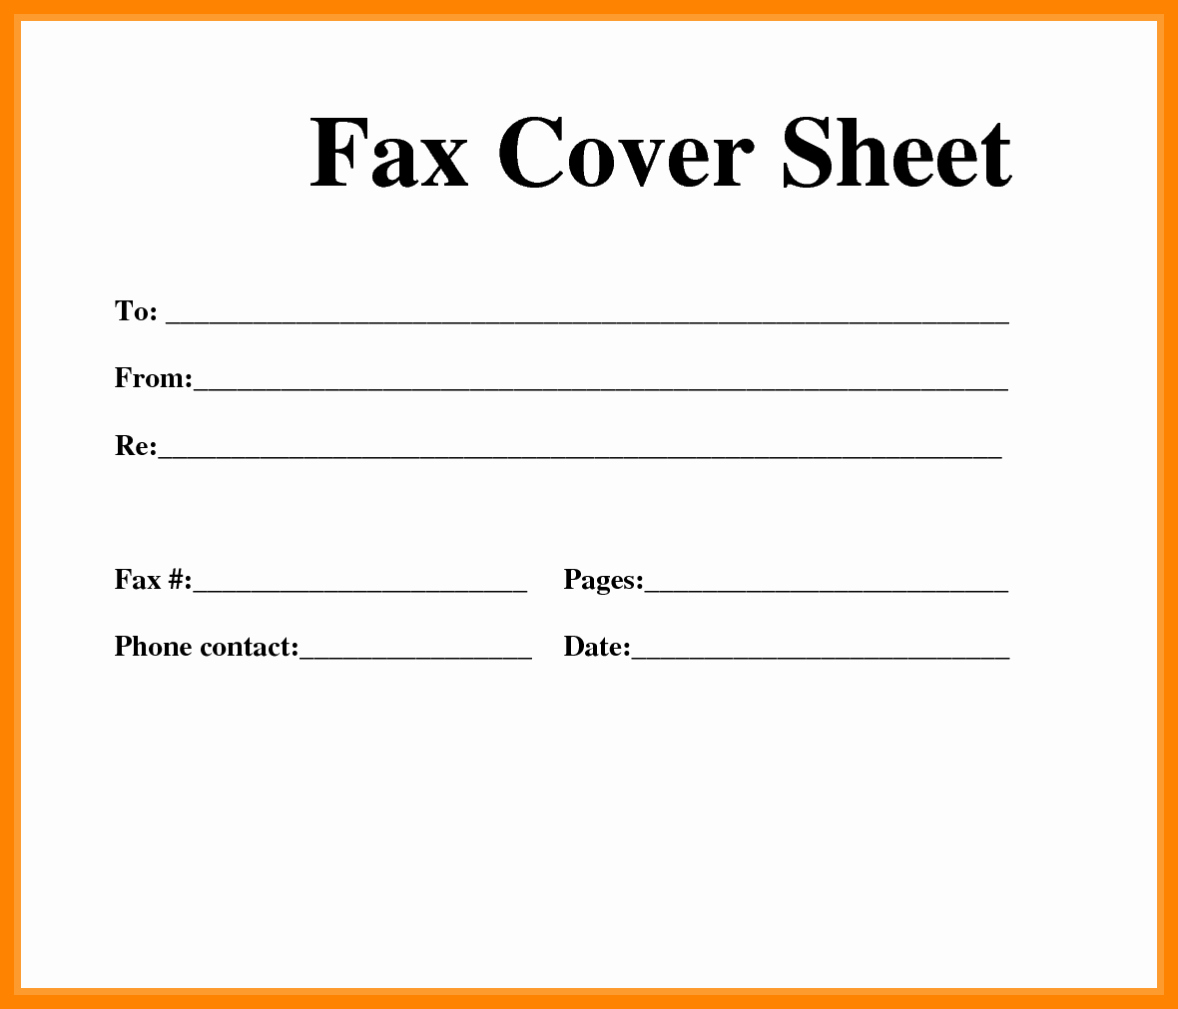 Fax Cover Sheet Sample Pdf Beautiful 9 Free Printable Fax Cover Sheets Templates